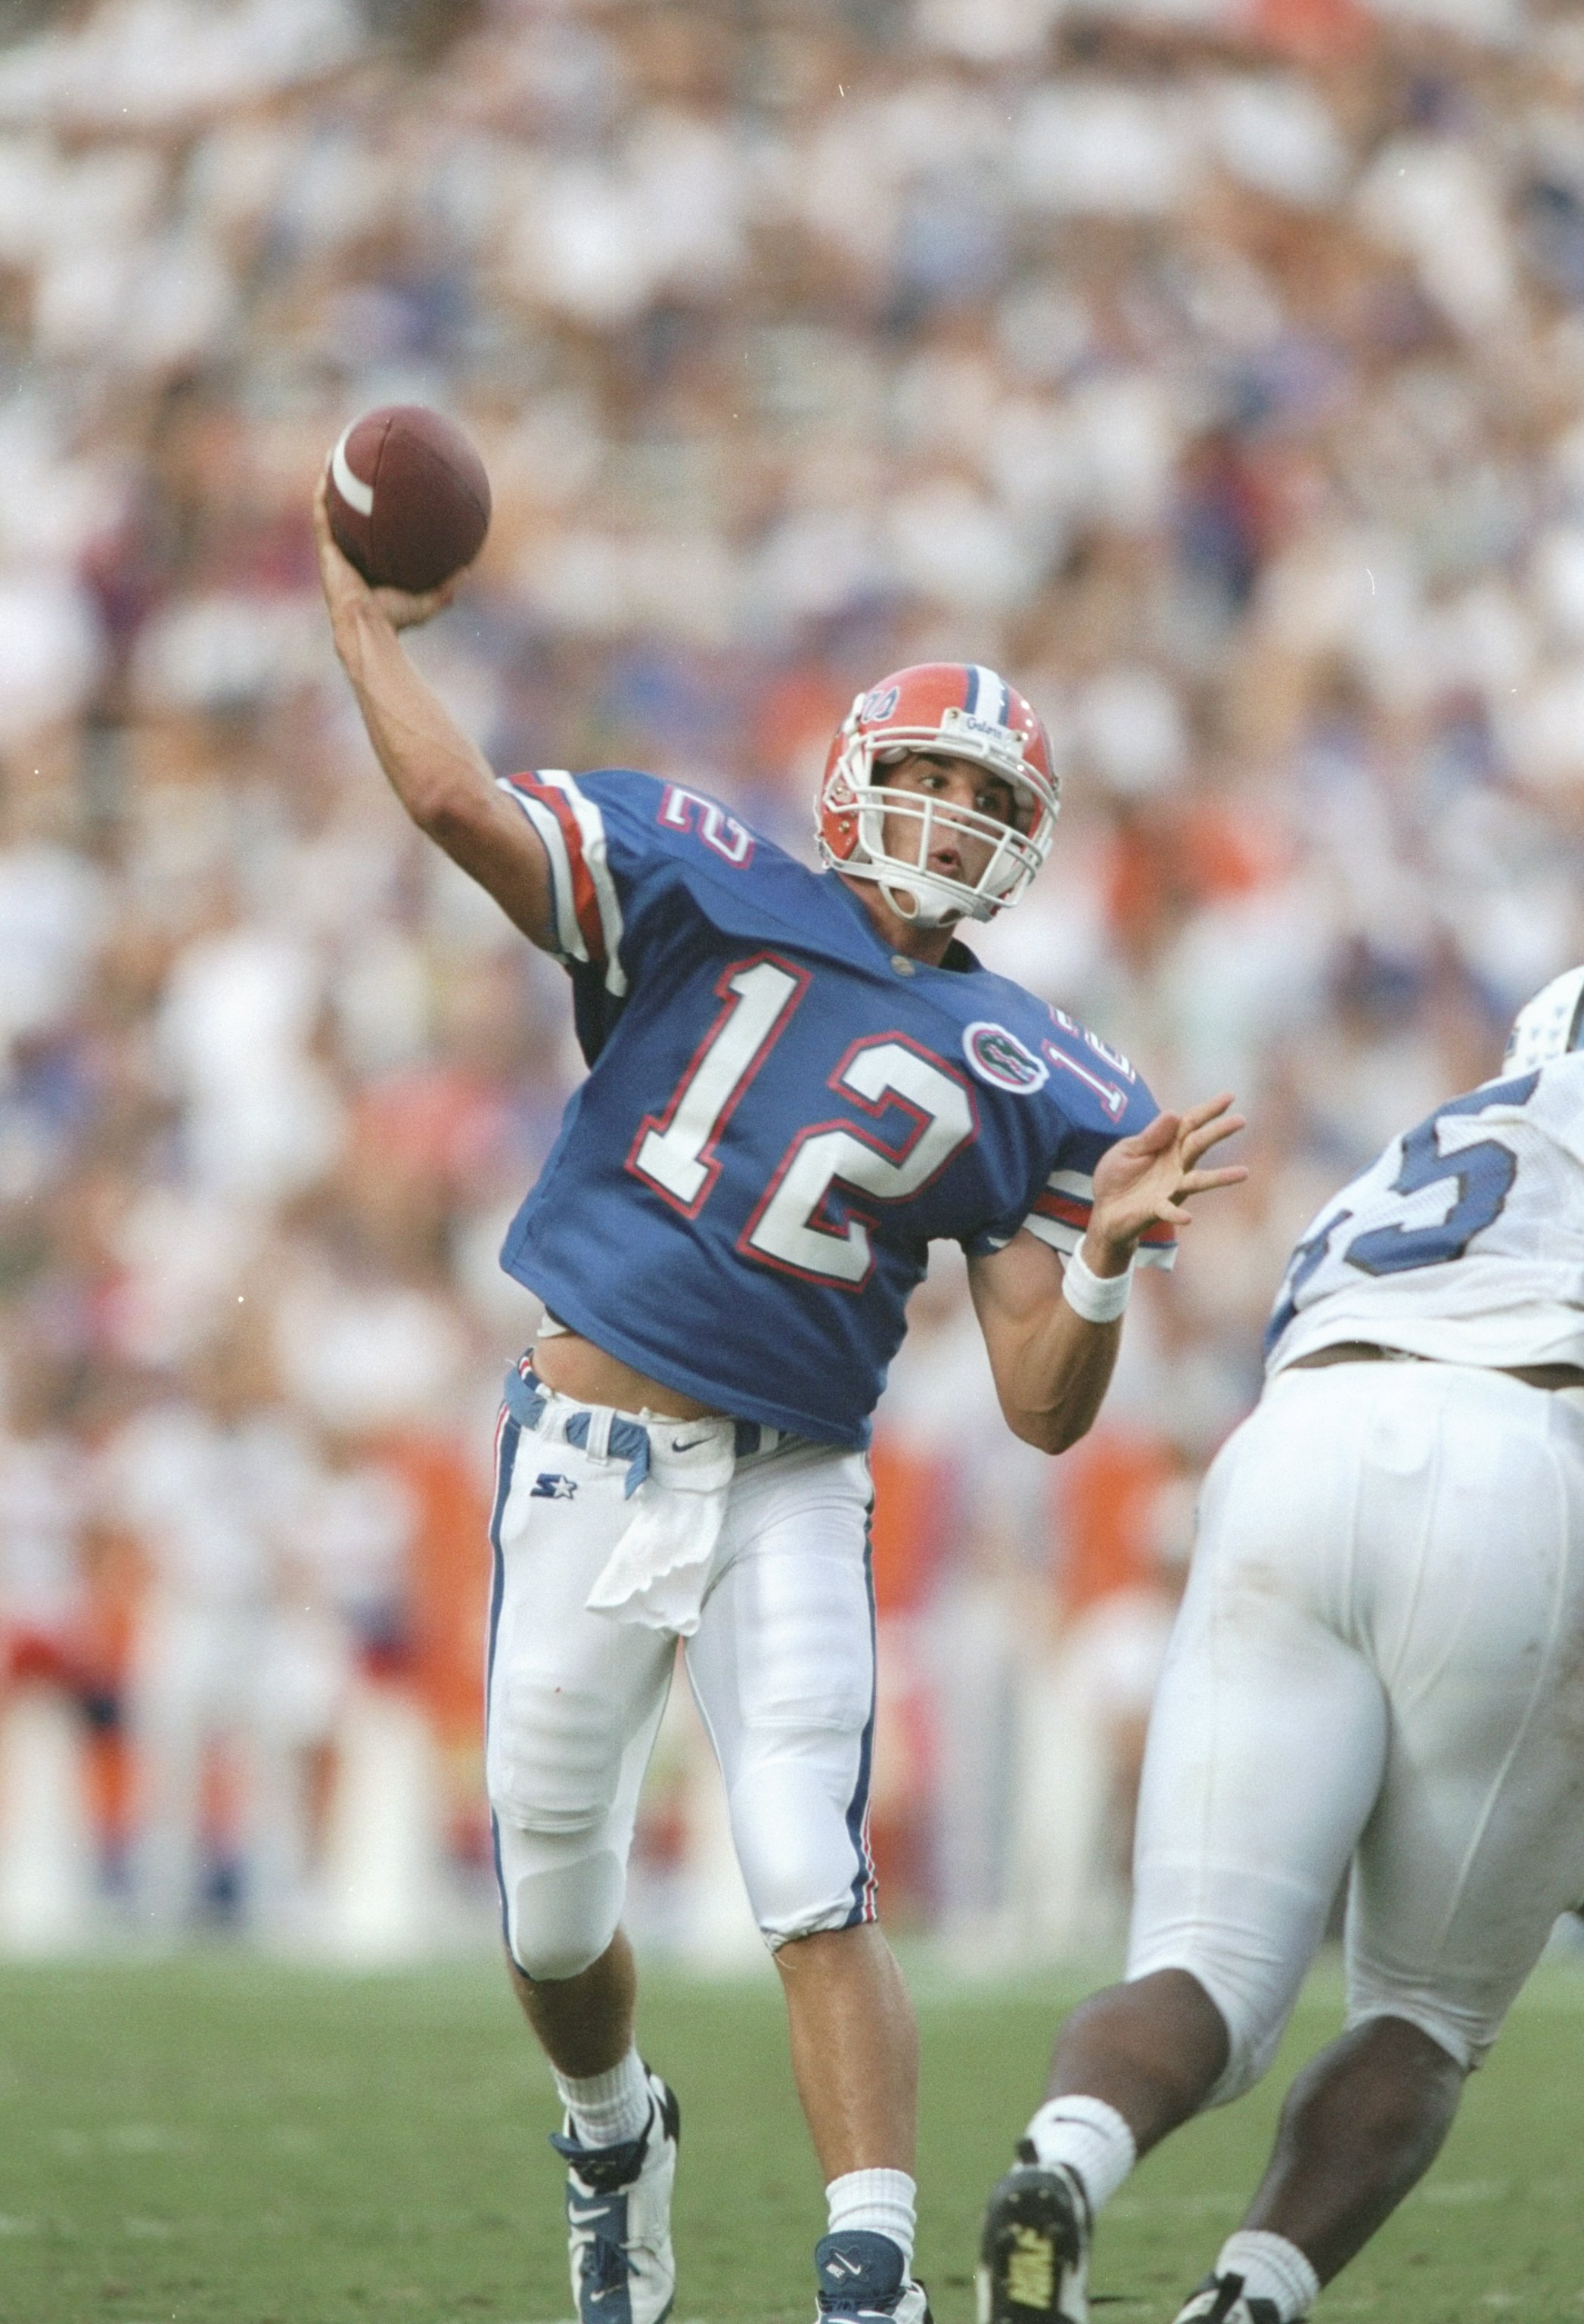 Two-sport standout Doug Johnson quarterbacked UF in the late 1990s.